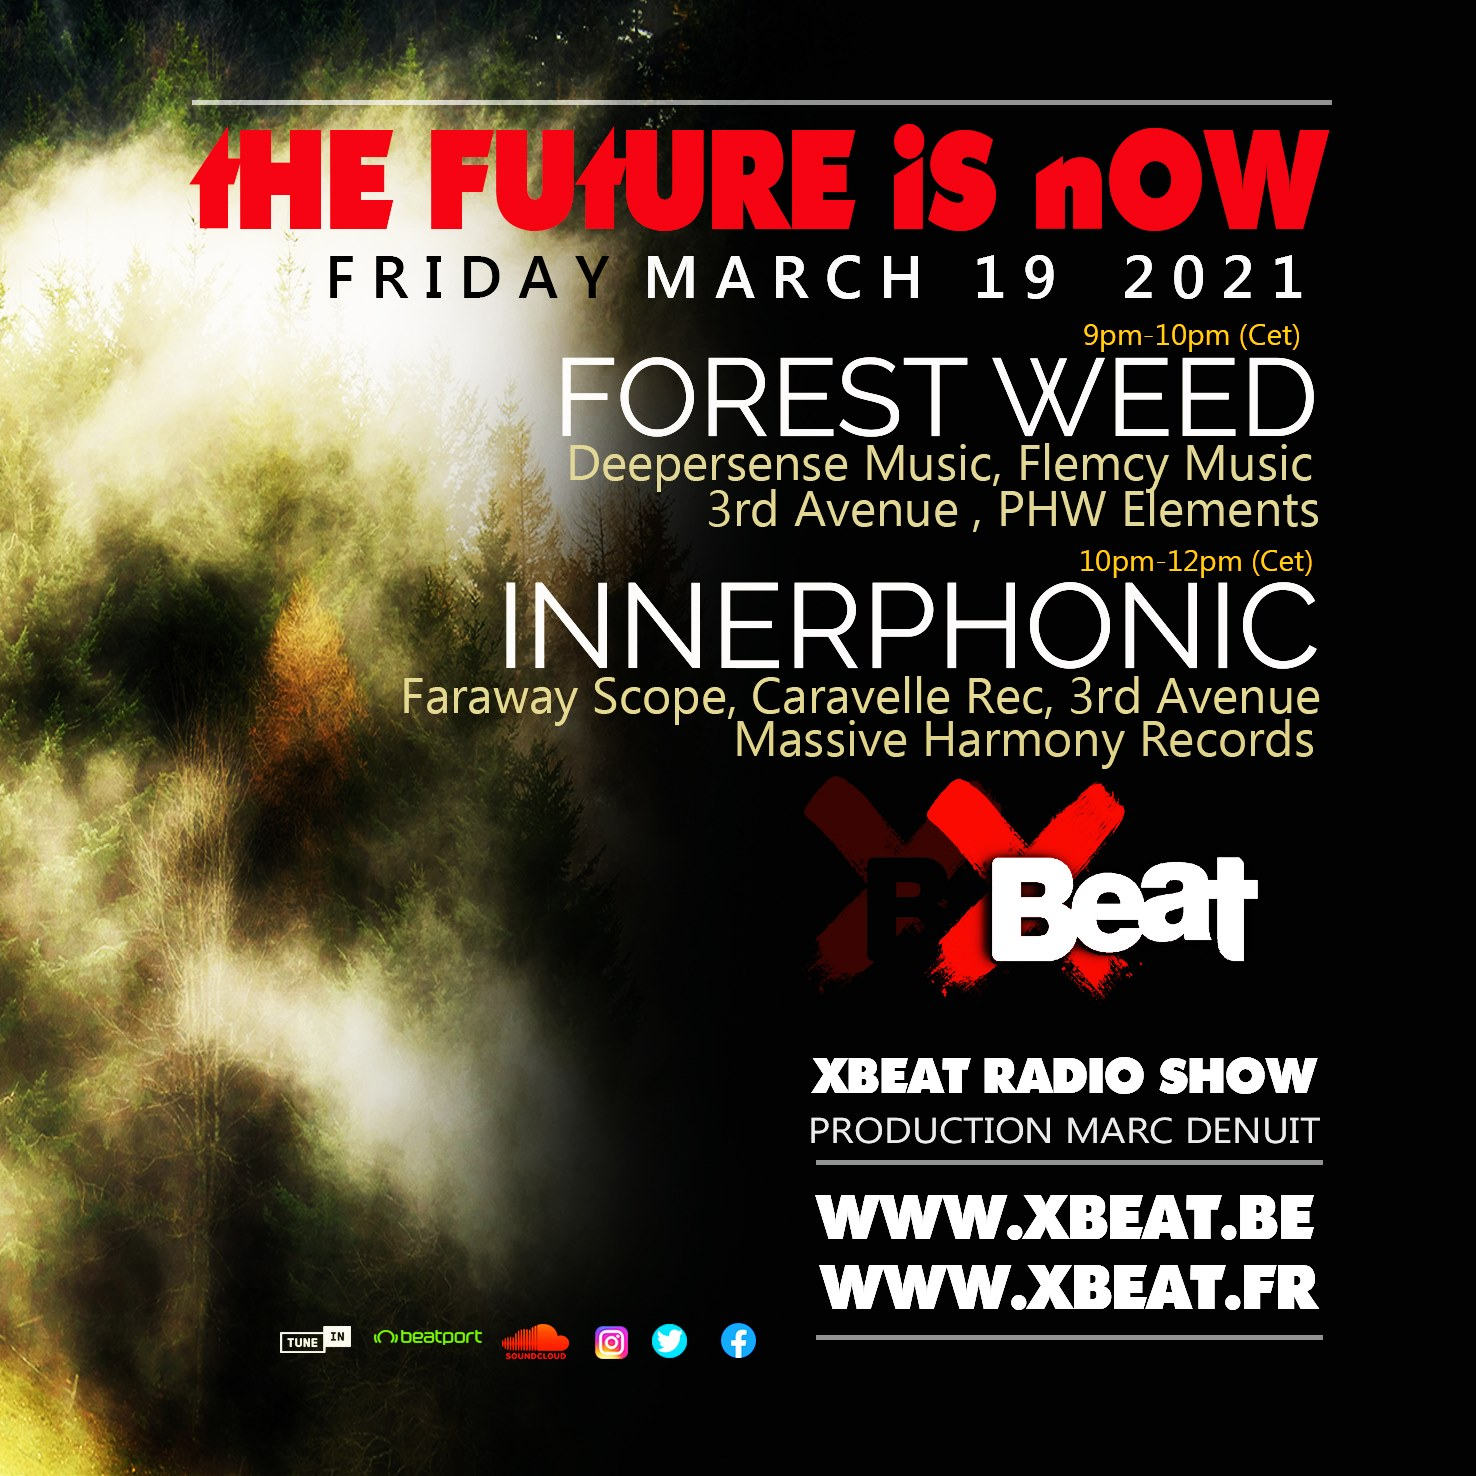 HYPNOTIC Show :: Forest Weed - Special Connection for XBEAT.org 'the future is now' March 2021 (aired on March 20th) banner logo